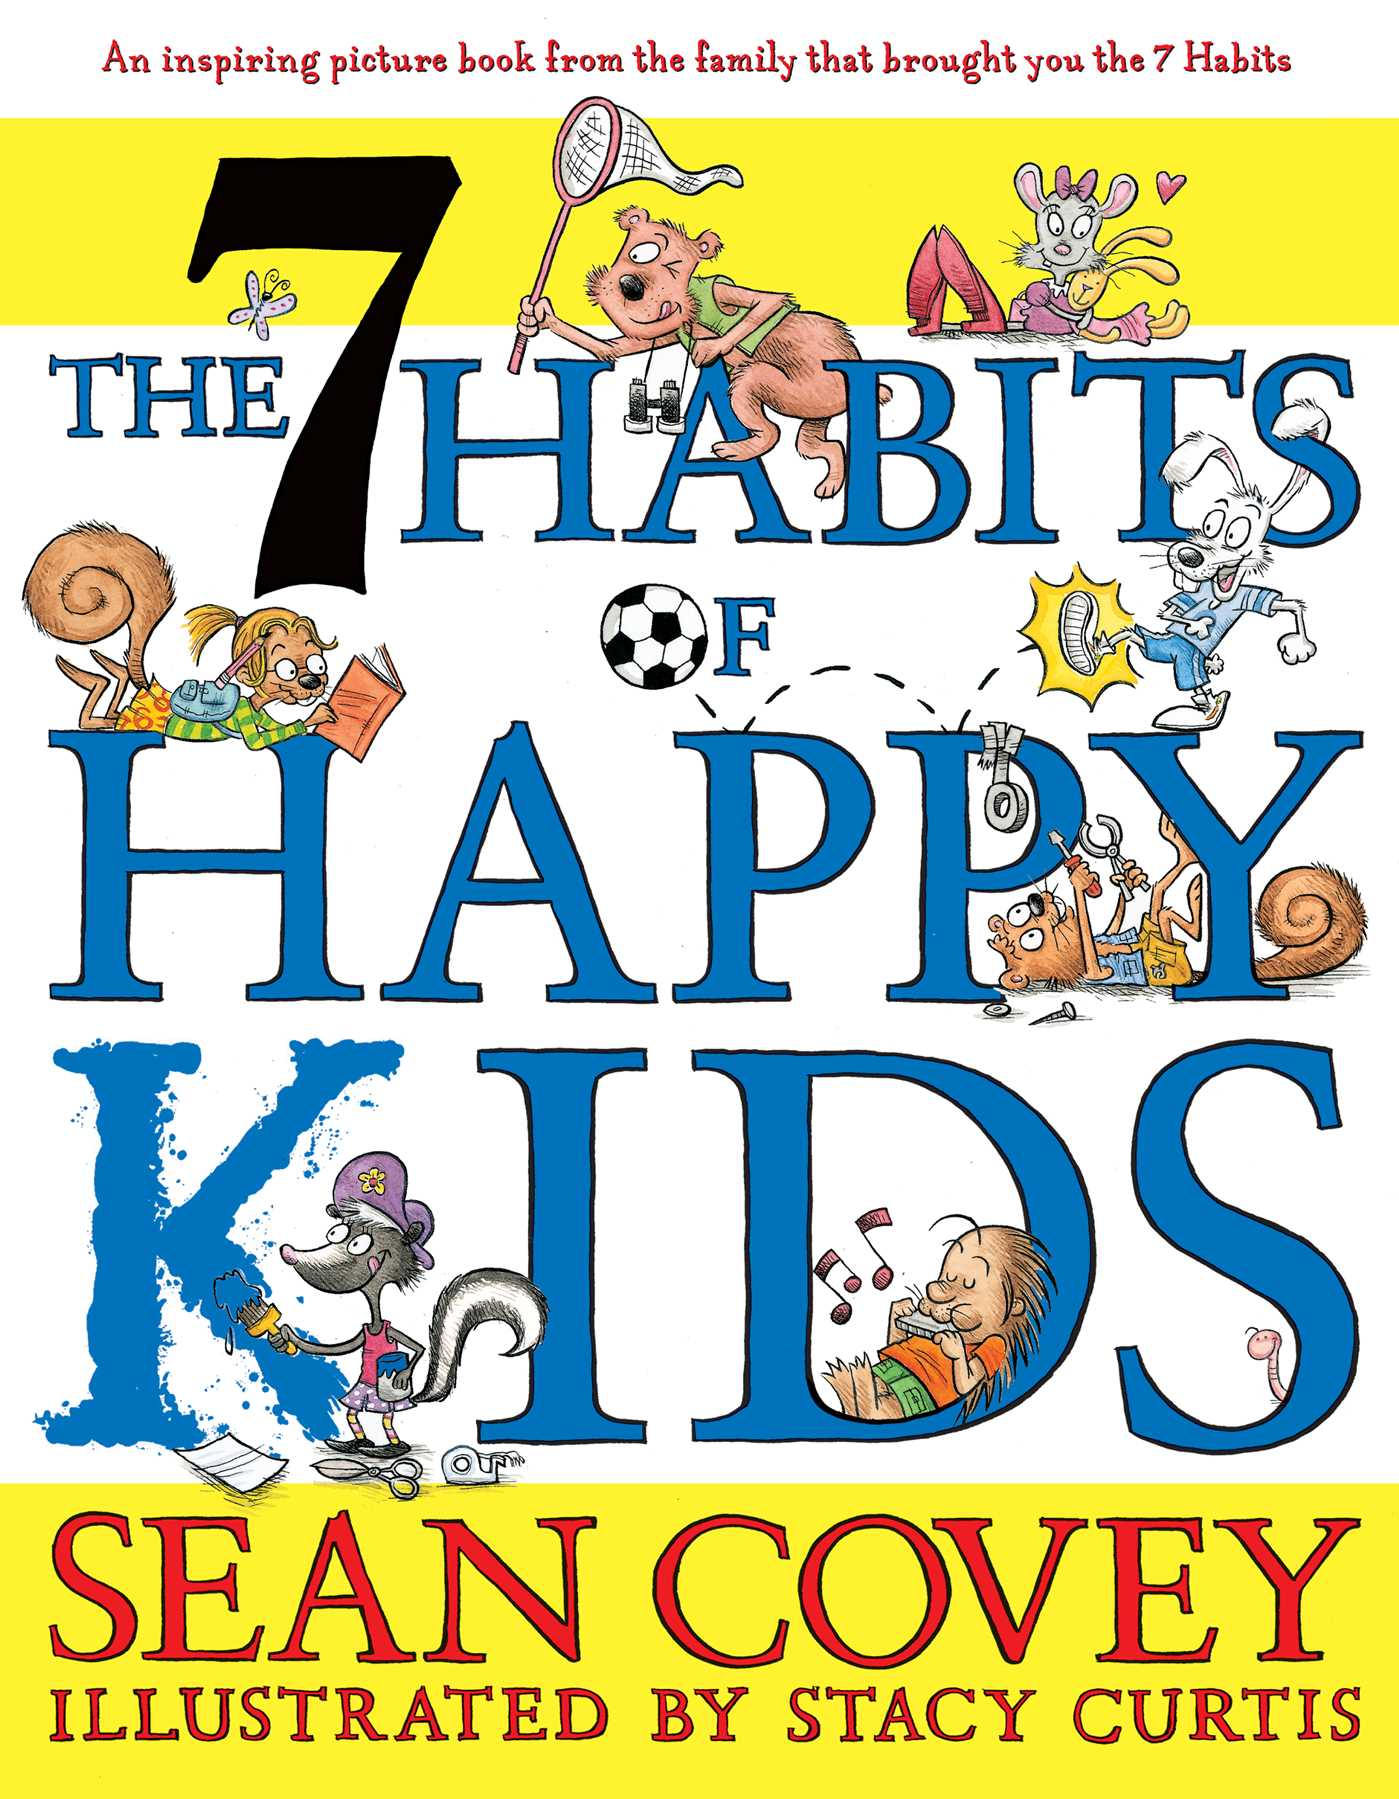 The 7 habits of happy kids 9781442439542 hr